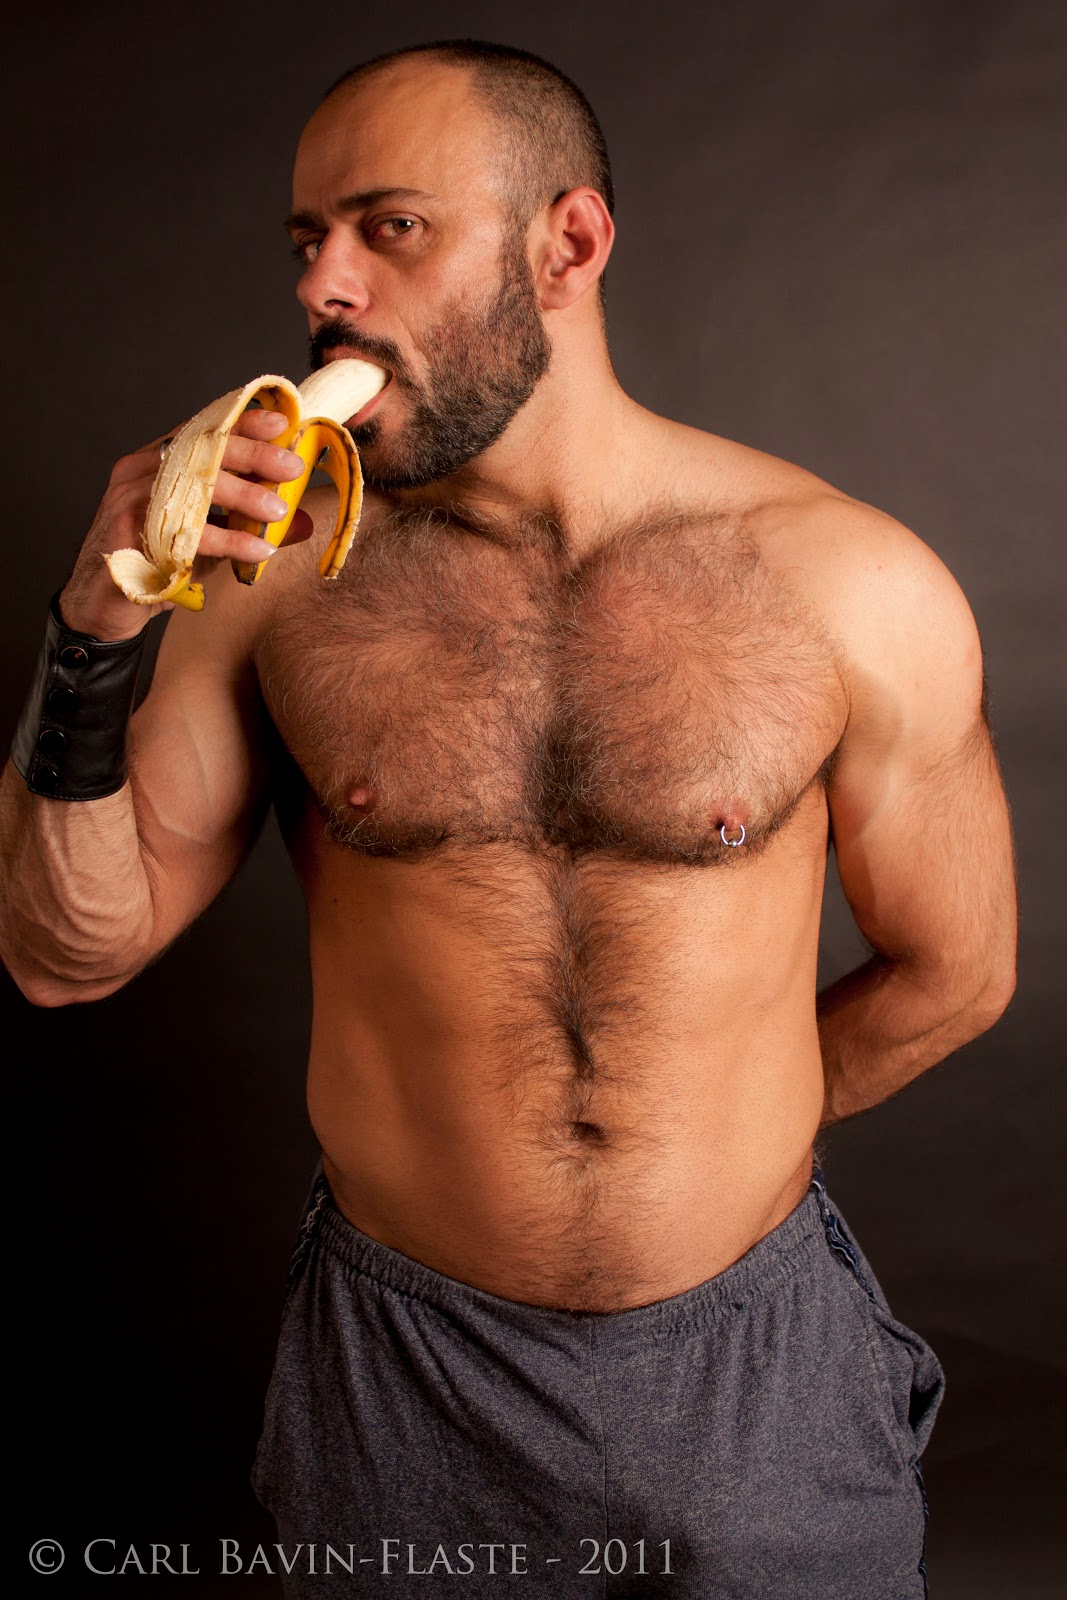 Gay Men and Body Hair - To Shave Or Not To Shave?